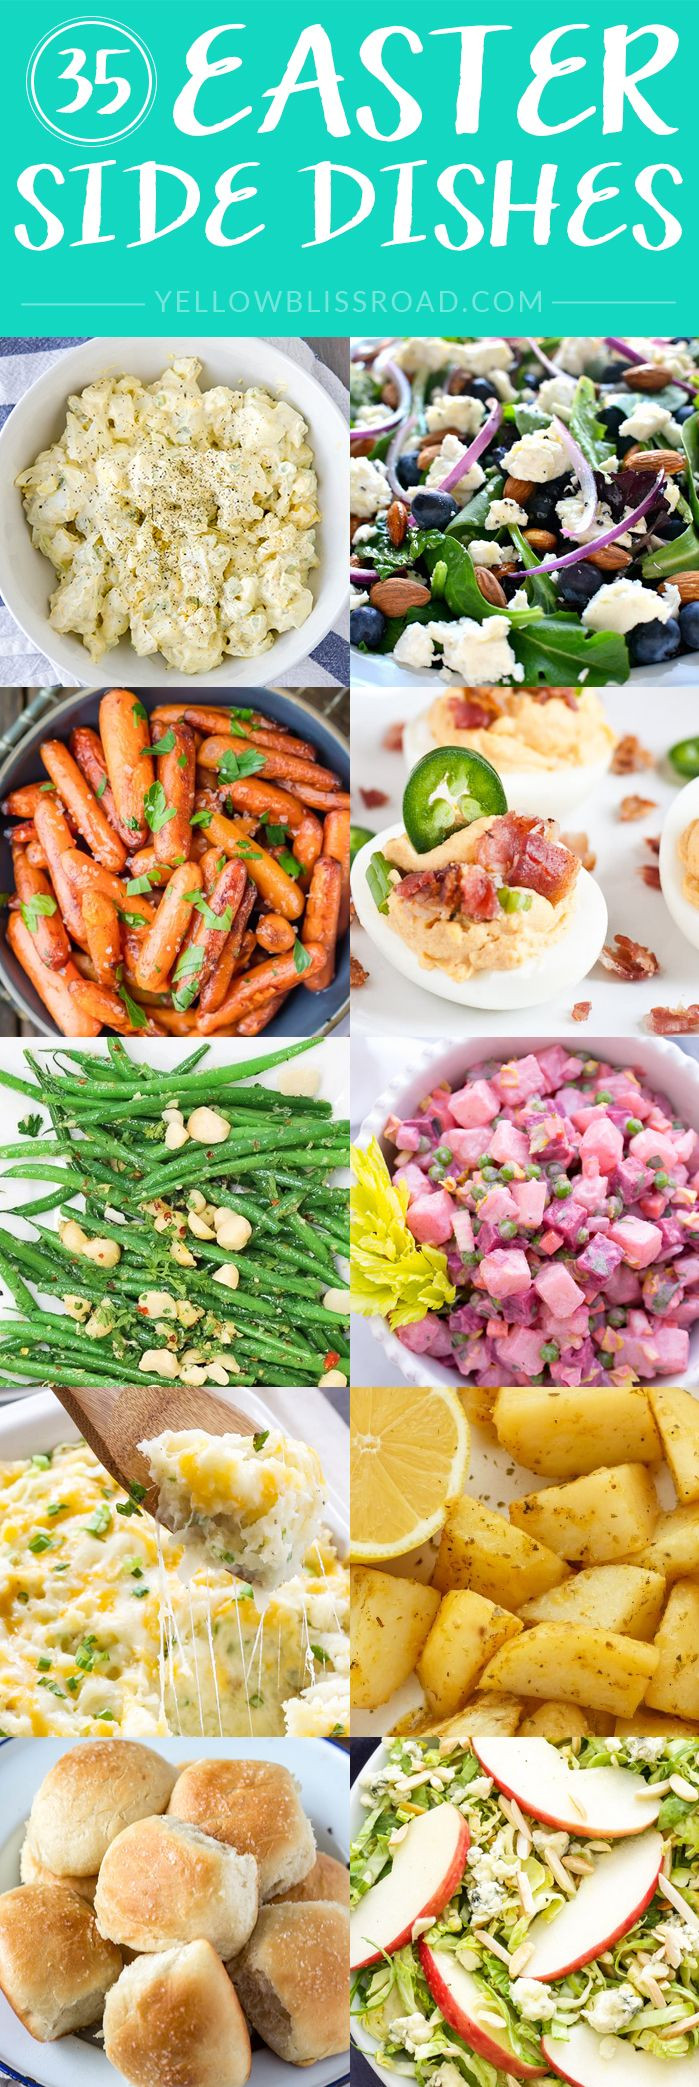 Side Dishes For Easter Ham  Best 25 Easter ideas on Pinterest